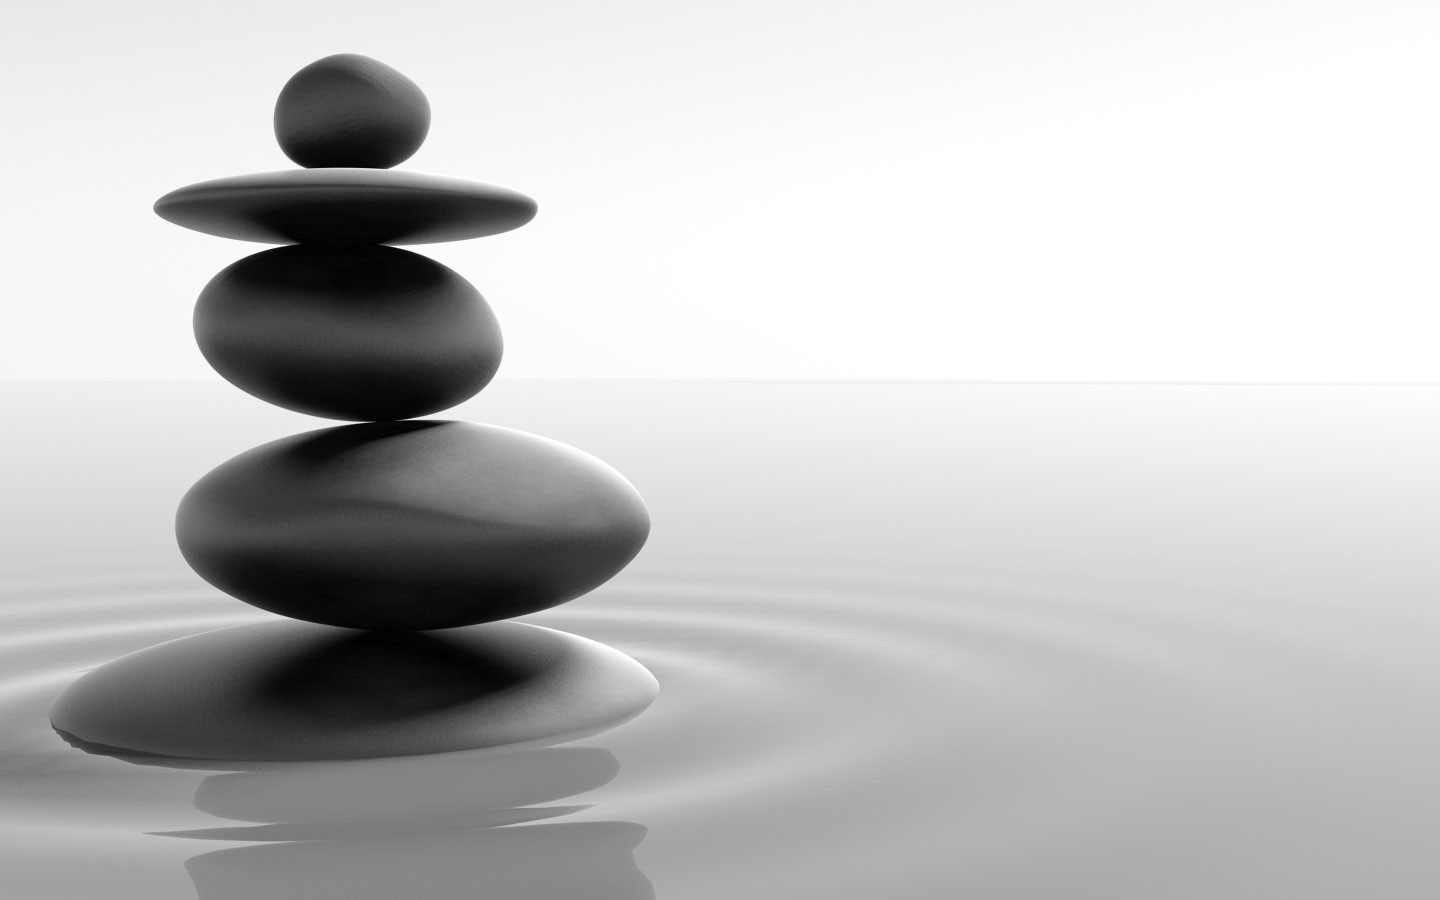 Zen Meditation Wallpaper Download 1440x900